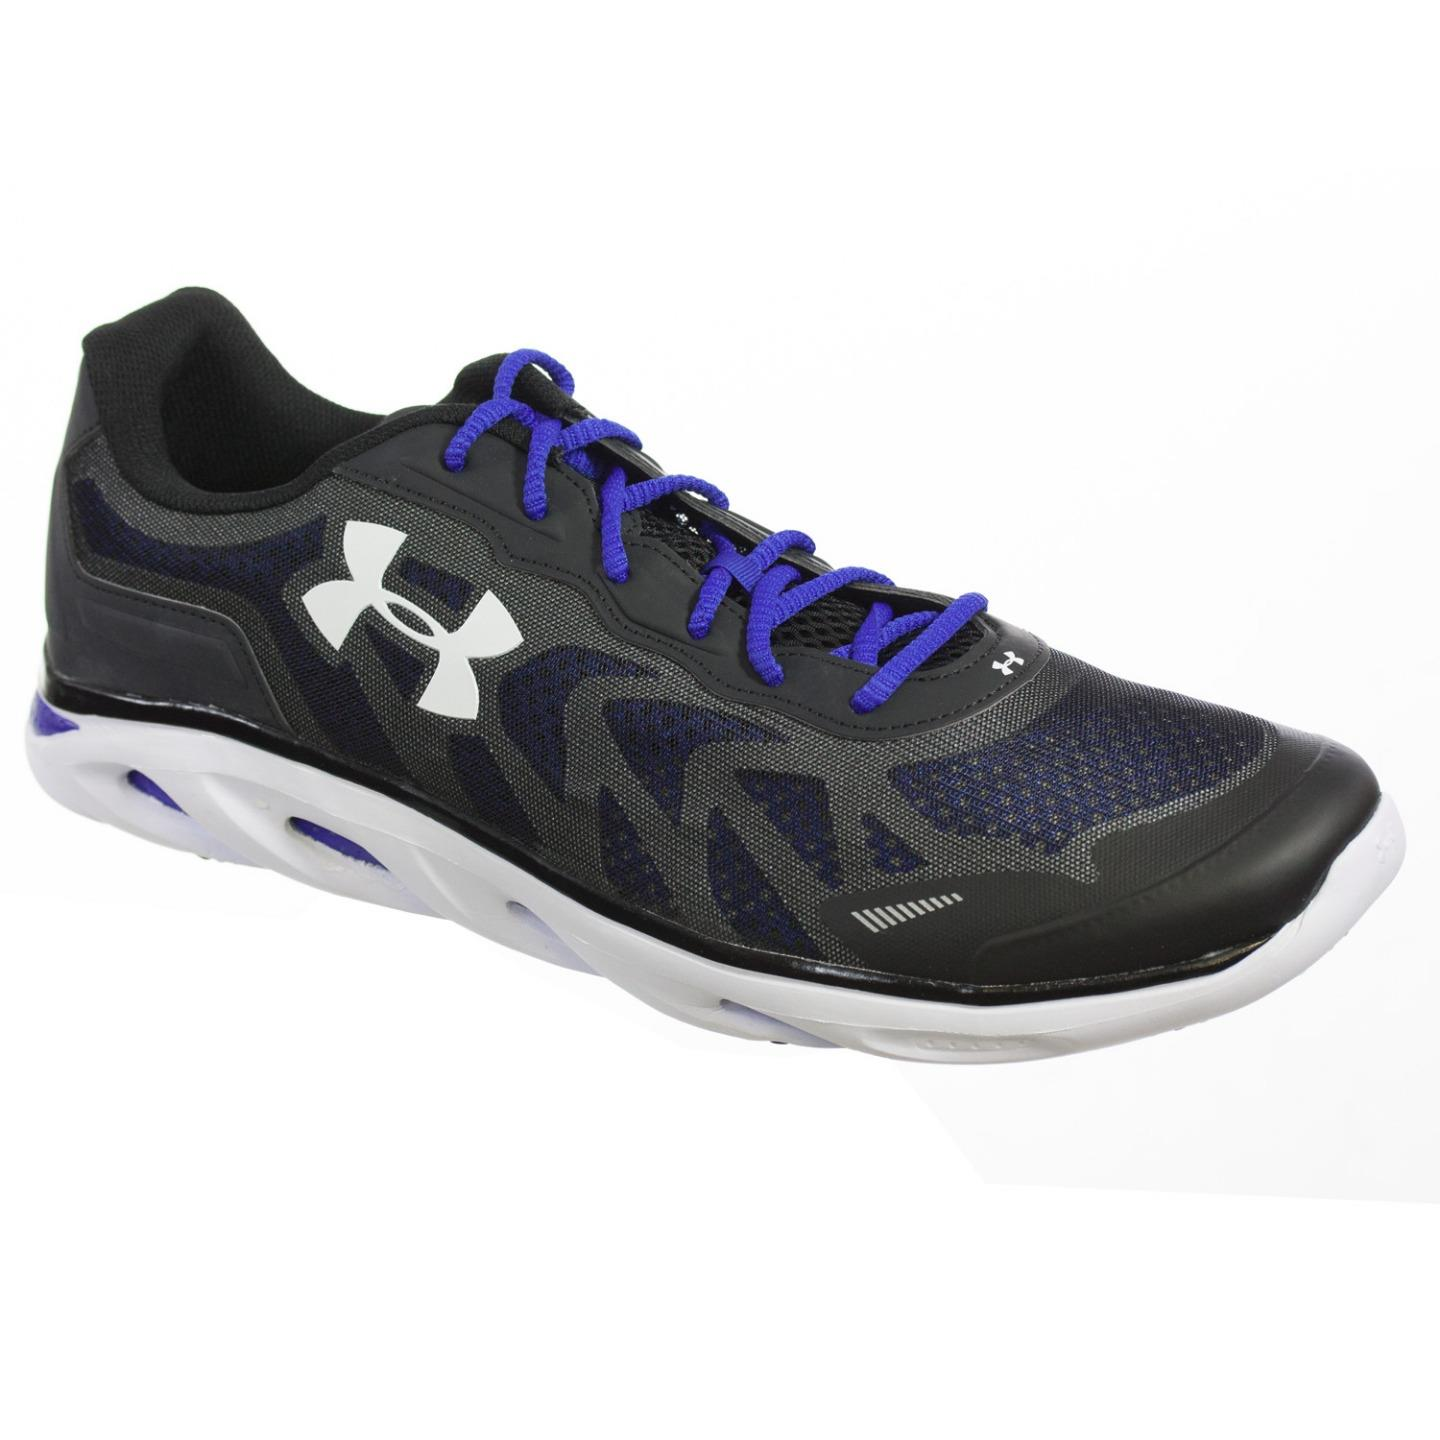 UNDER ARMOUR MENS ATHLETIC SHOES TEAM SPINE VENOM 2 BLACK WHITE MAROON 14 M